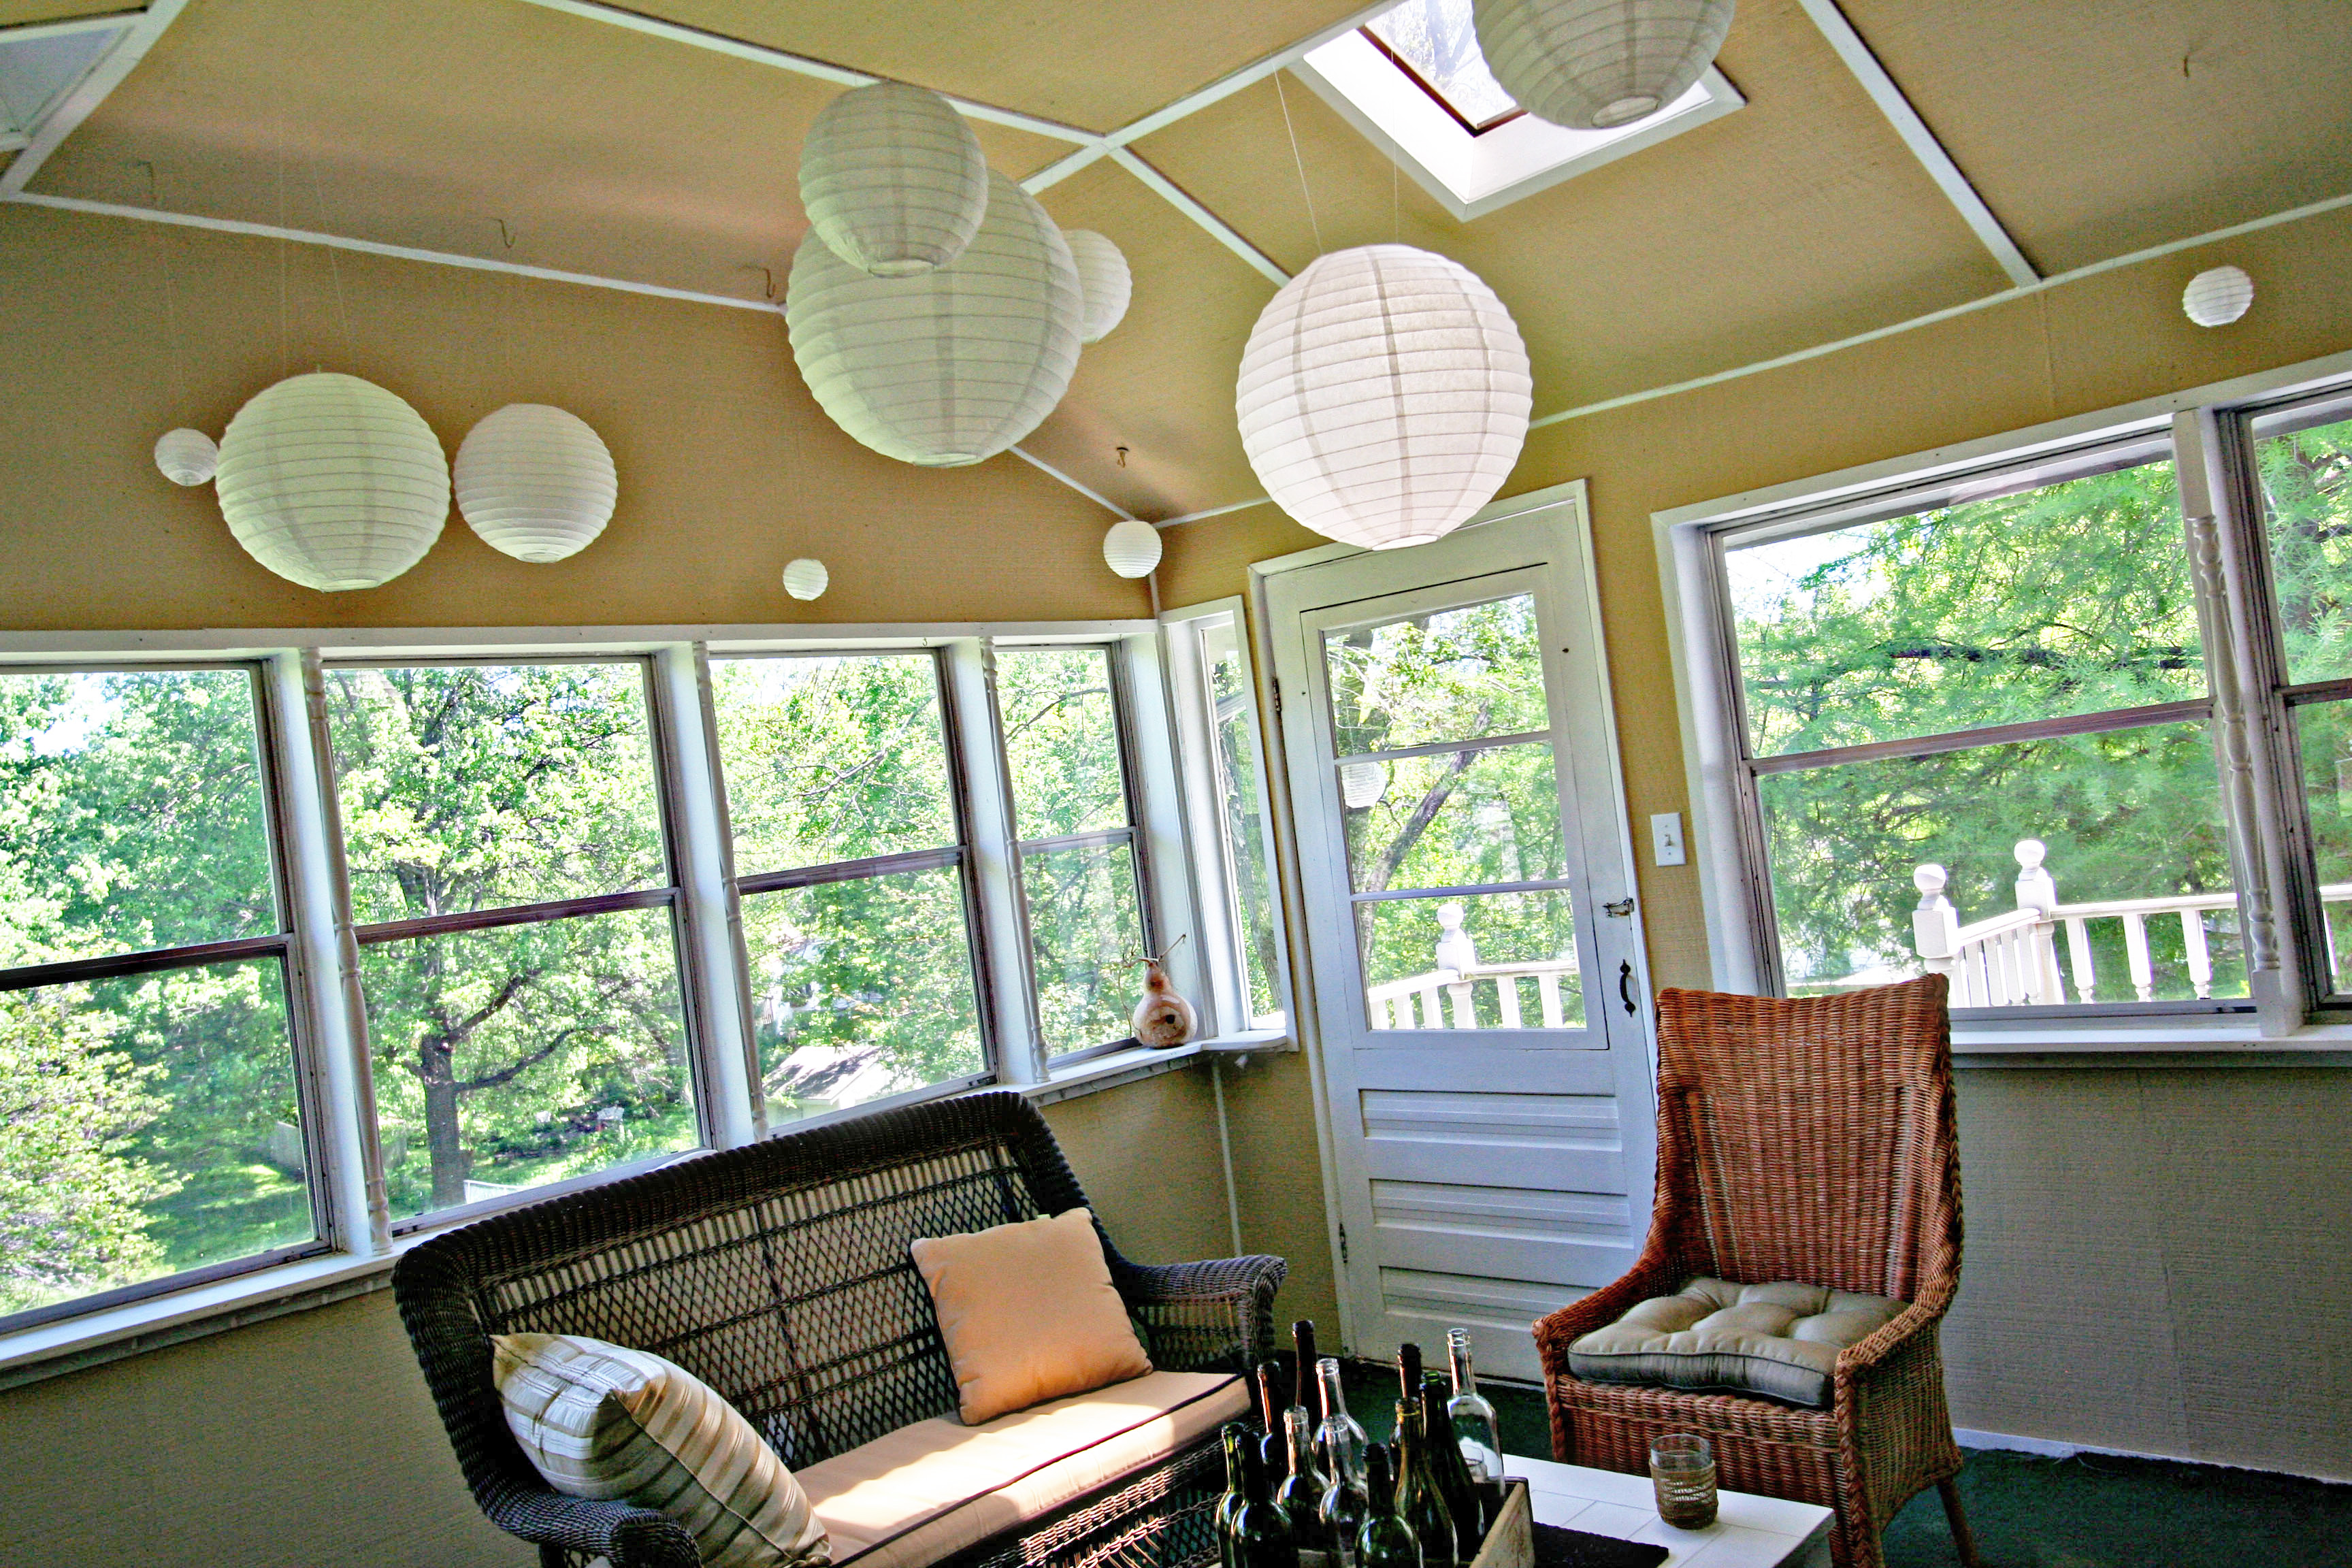 tan sun room with paper lanterns hanging from the ceiling